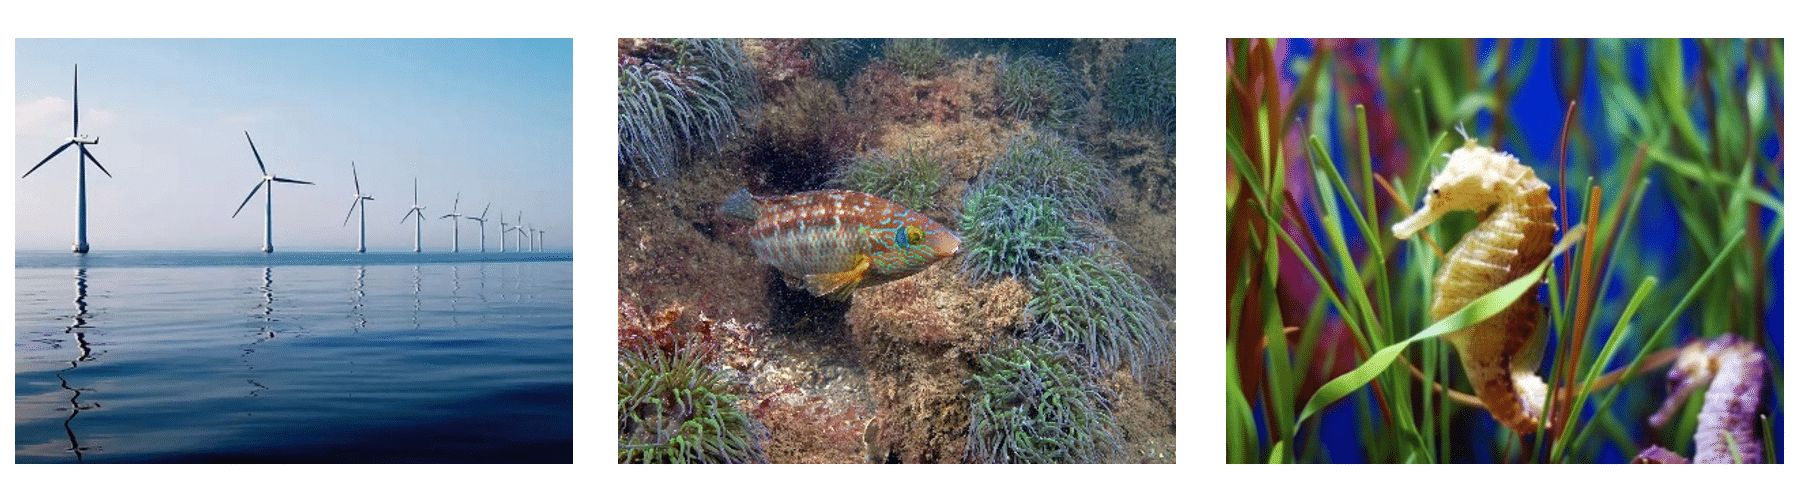 Three images, left to right: a marine wind farm; a male Corkwing Wrasse (courtesy of Paul Naylor); and a seahorse in seagrass